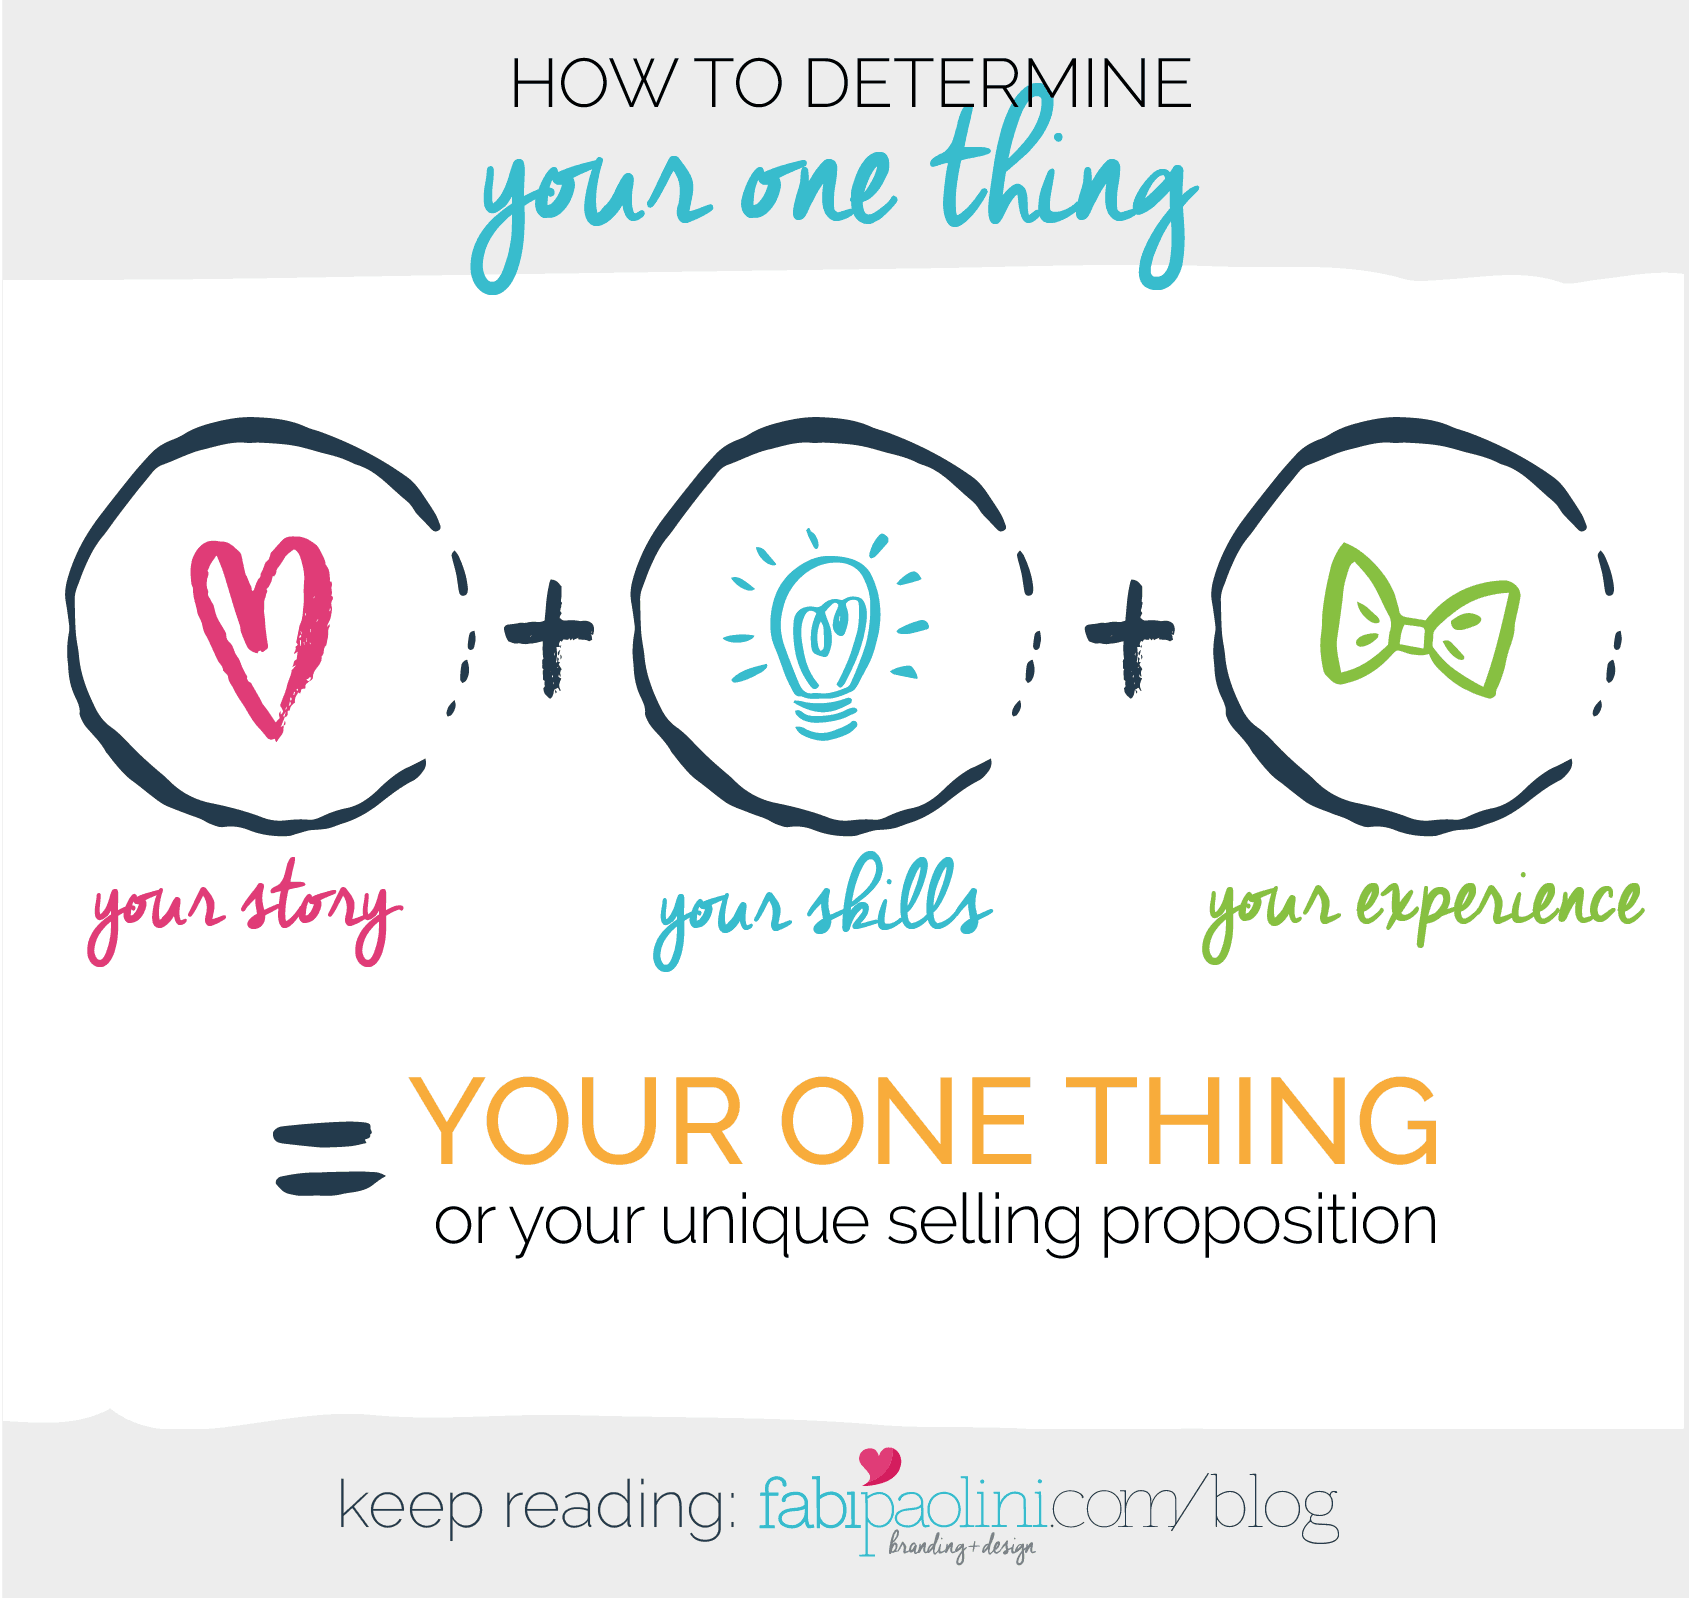 Your One thing. Discovering your Unique Selling Proposition. Differentiating your brand. Entrepreneur. Stand out.